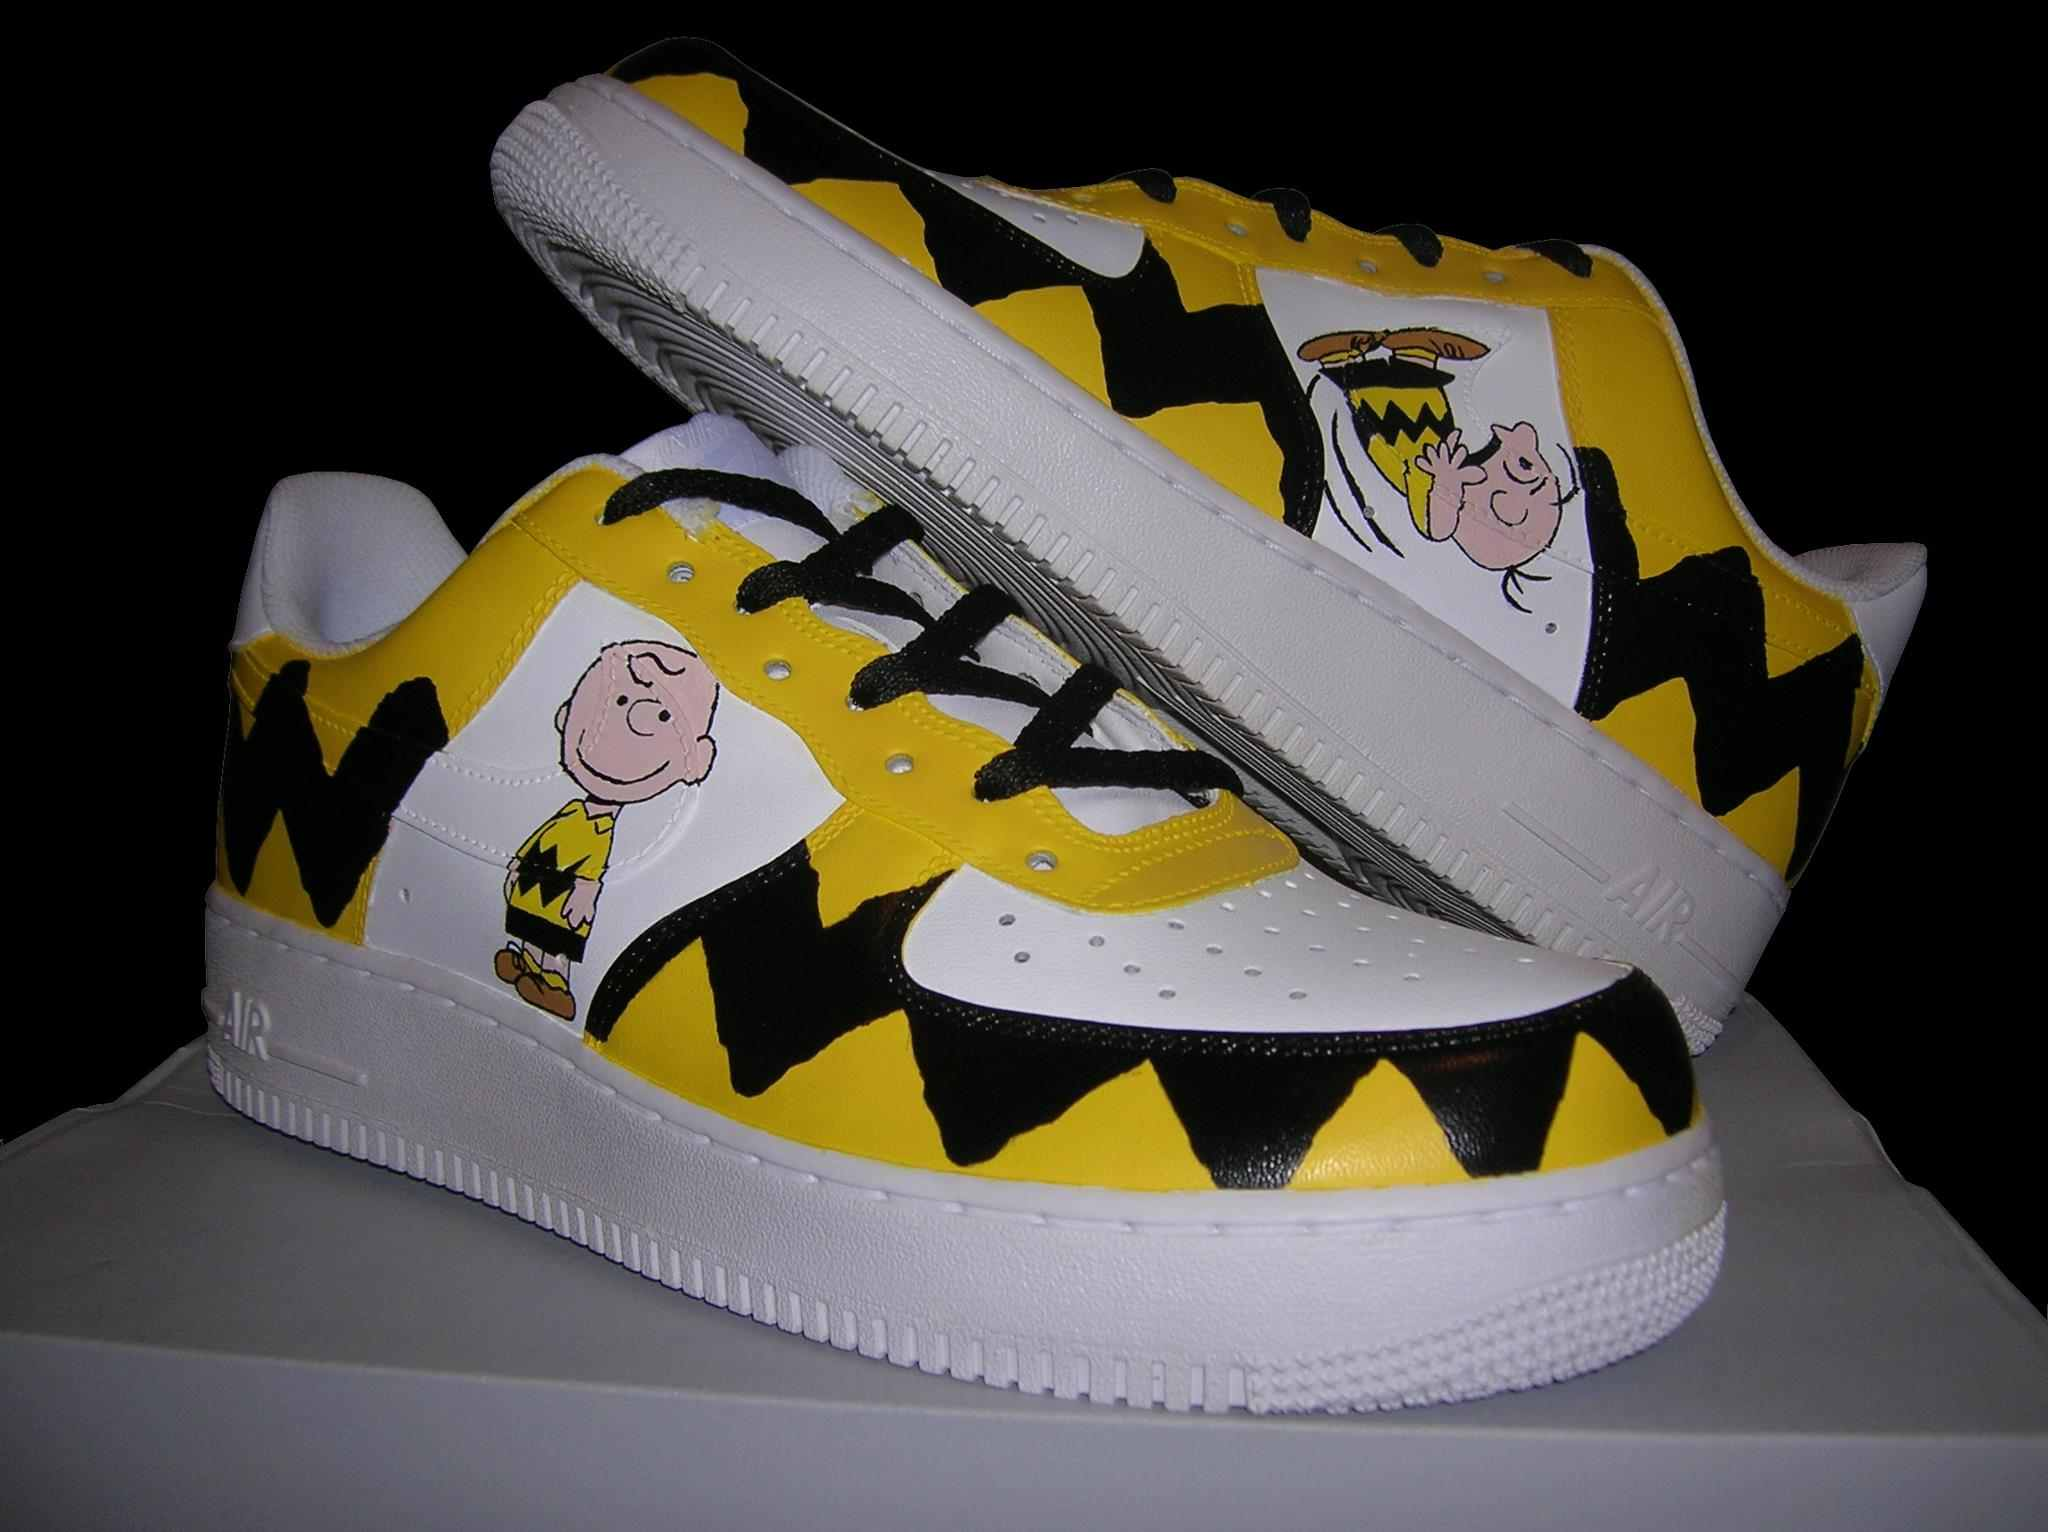 a698acc455fc CHARLIE BROWN  CUSTOM PAINTED AIR FORCE ONE SNEAKERS on Storenvy